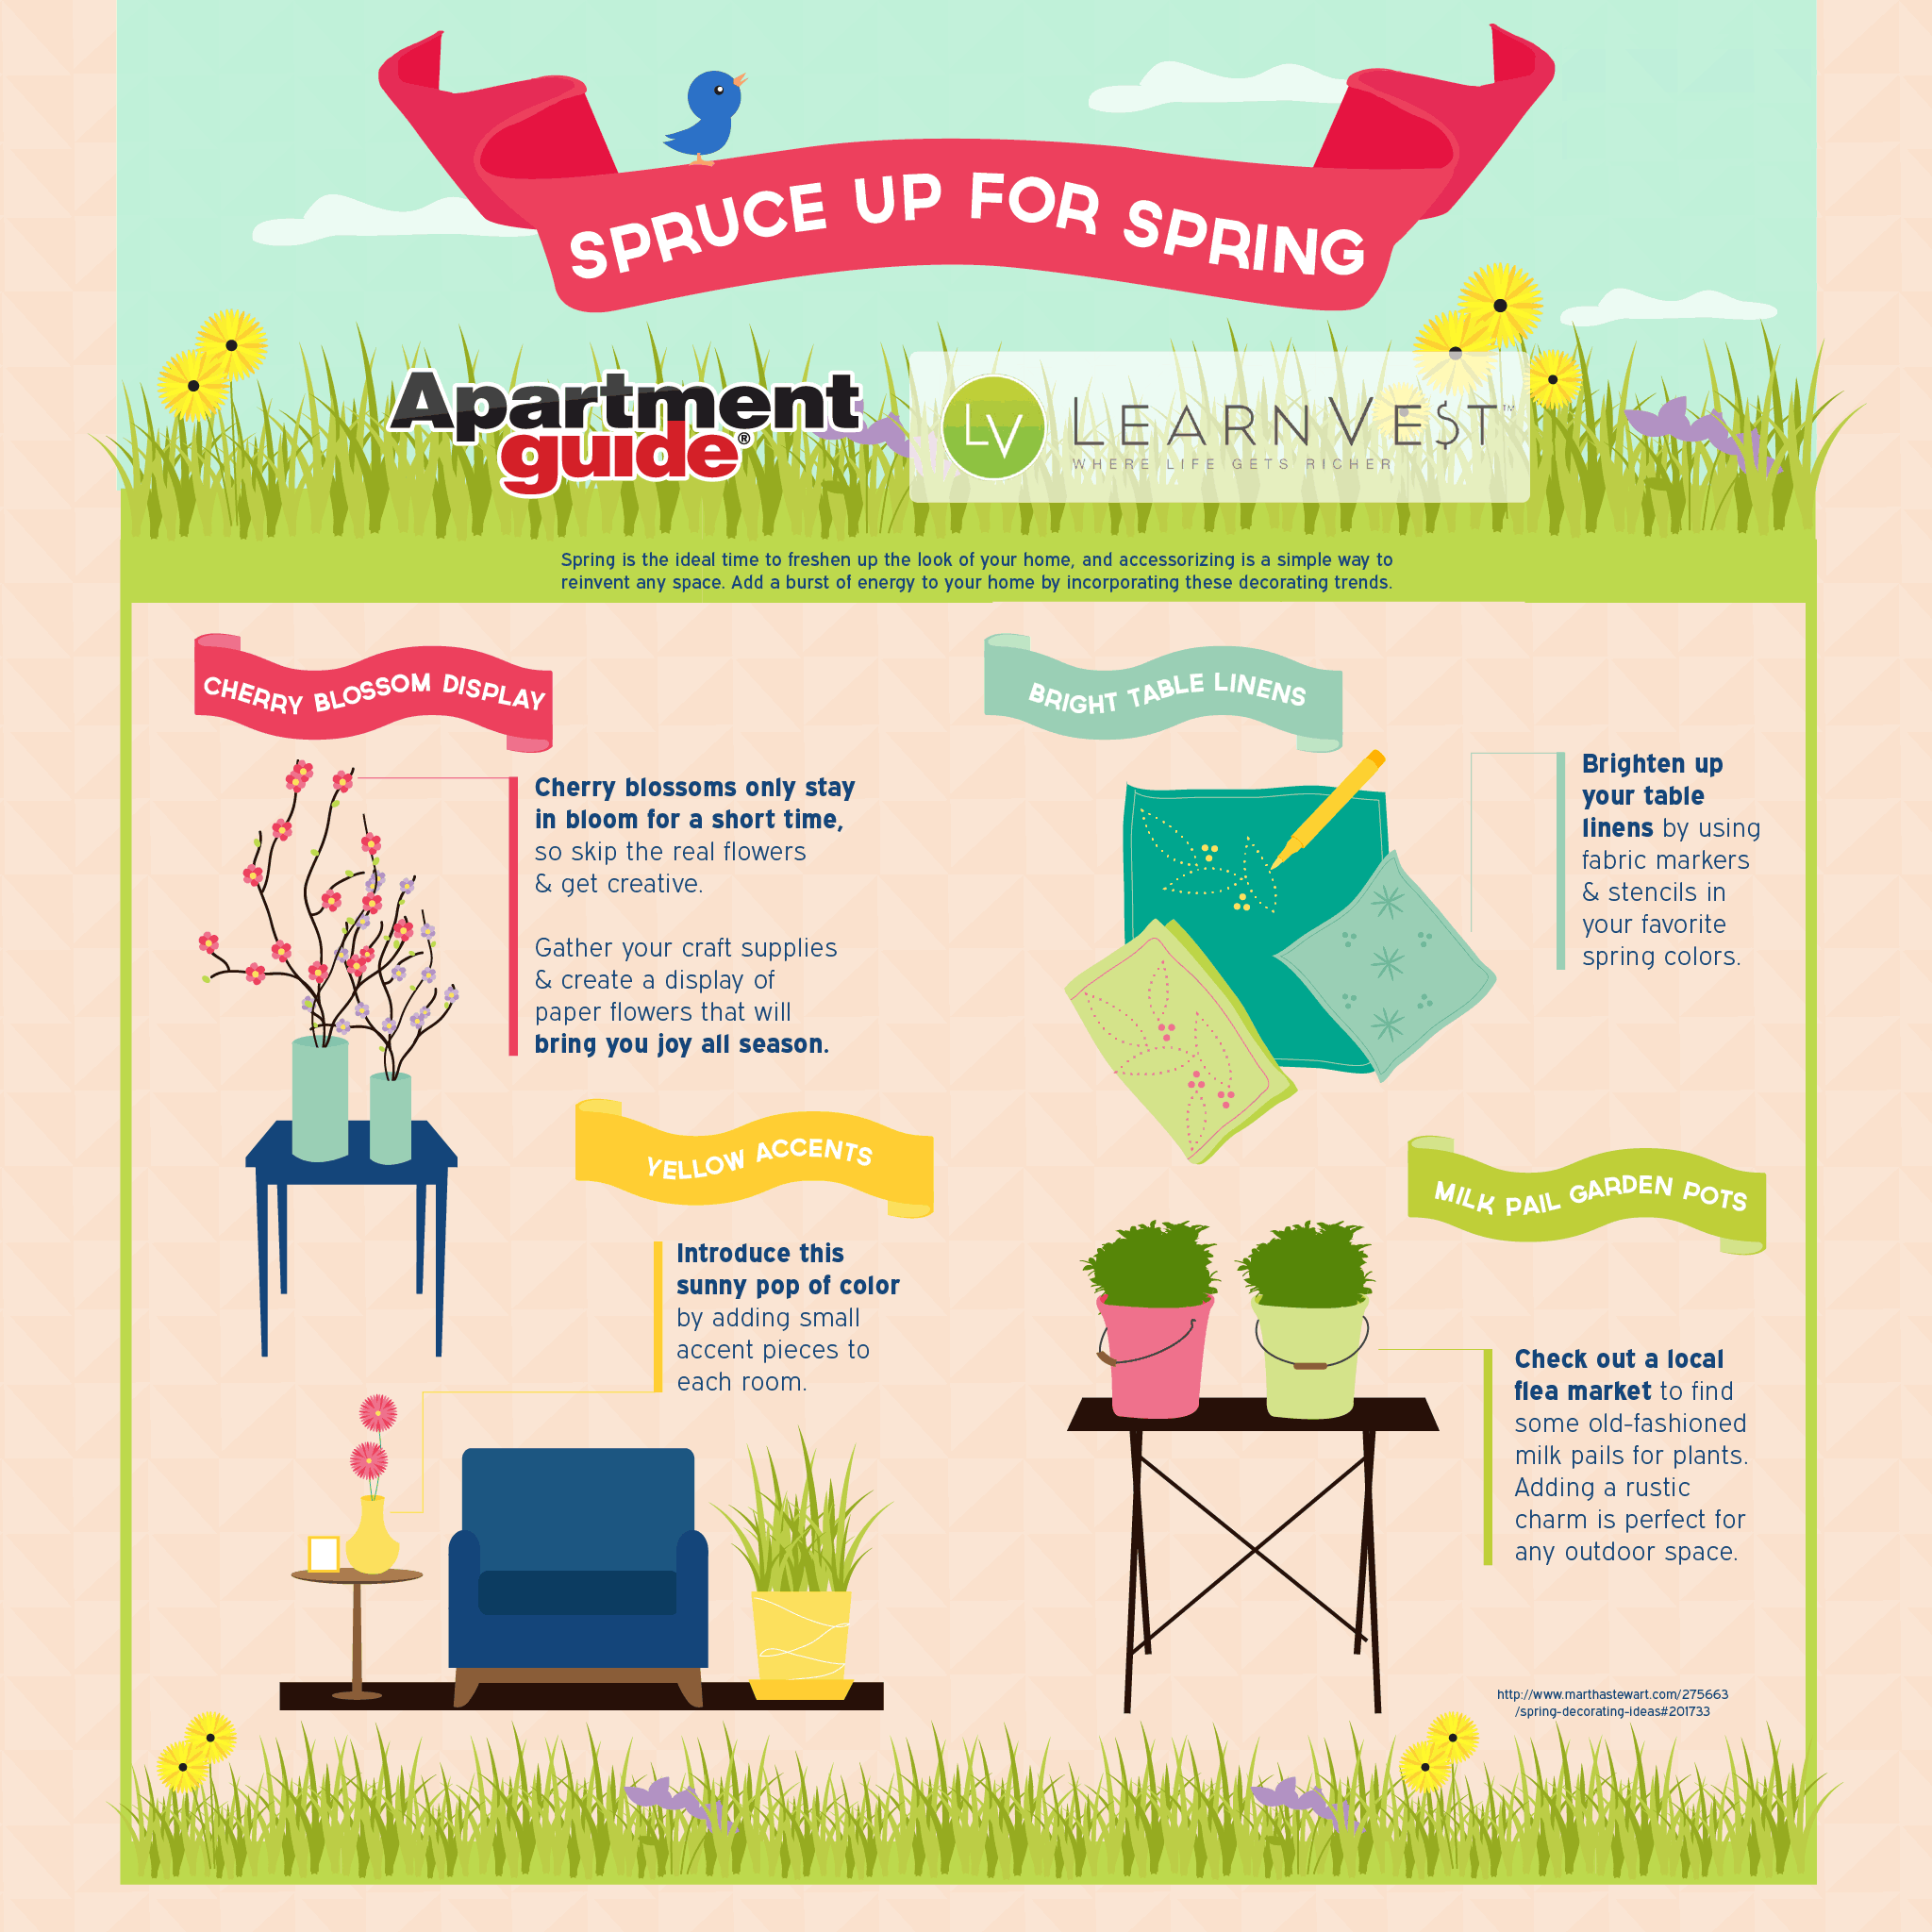 Spruce Up For Spring: Freshen Up Your Home (Infographic